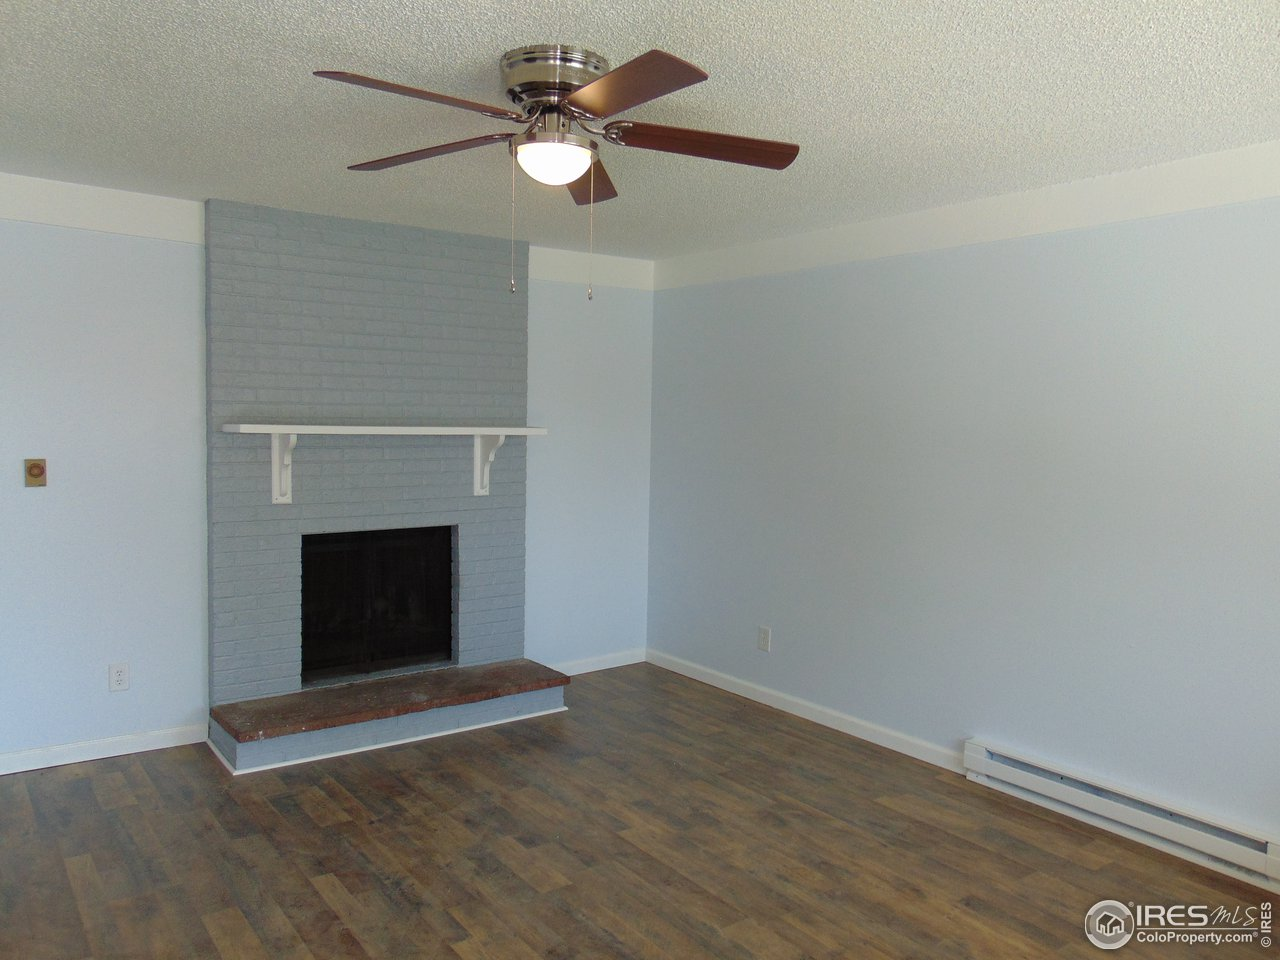 Livingroom with wood burning fireplace and ceiling fan for comfort.